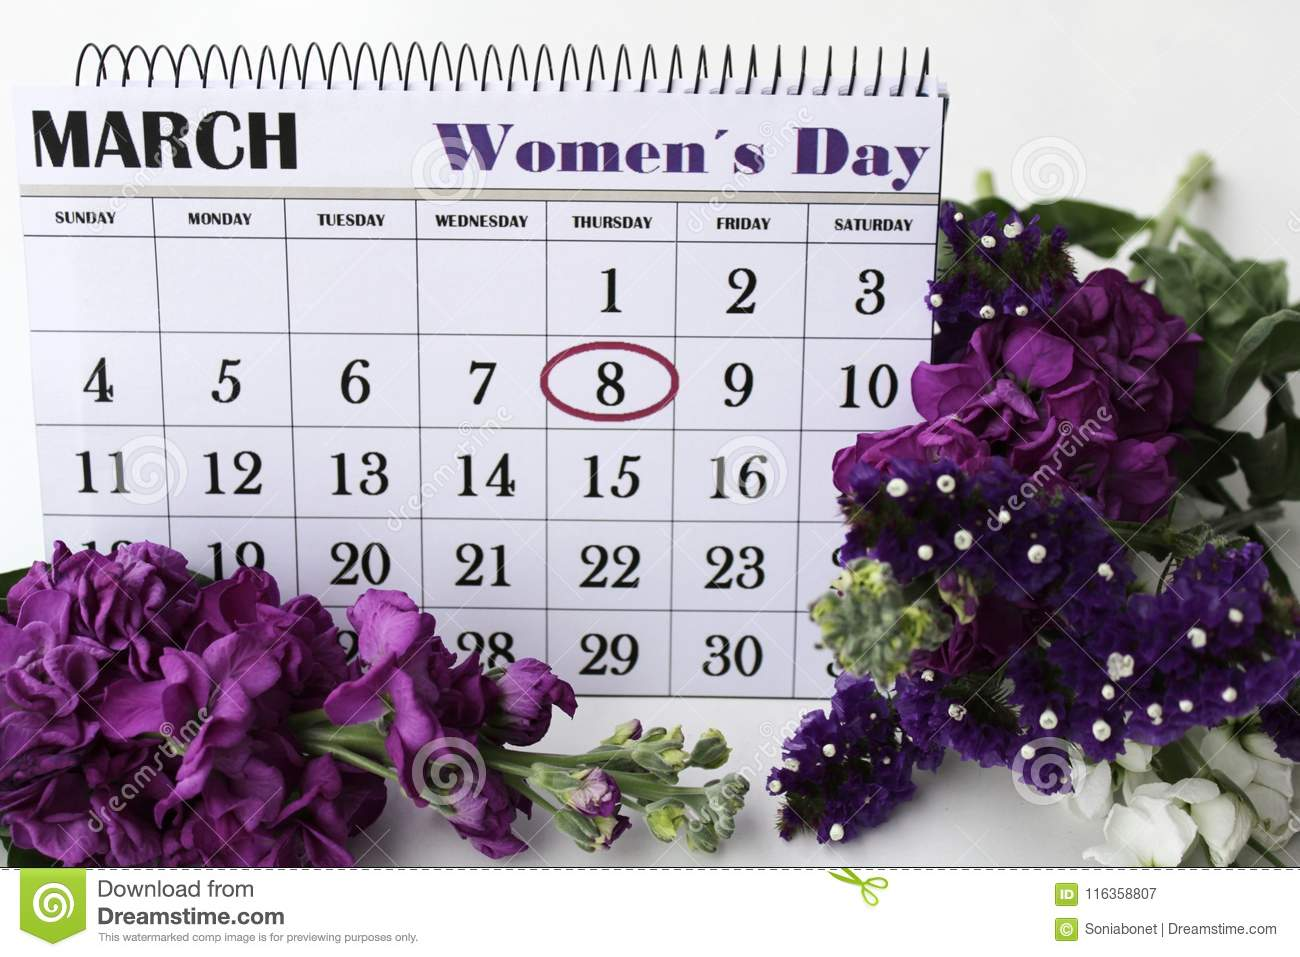 Liliums and Helichrysum flowers and calendar with marked Womens Day.